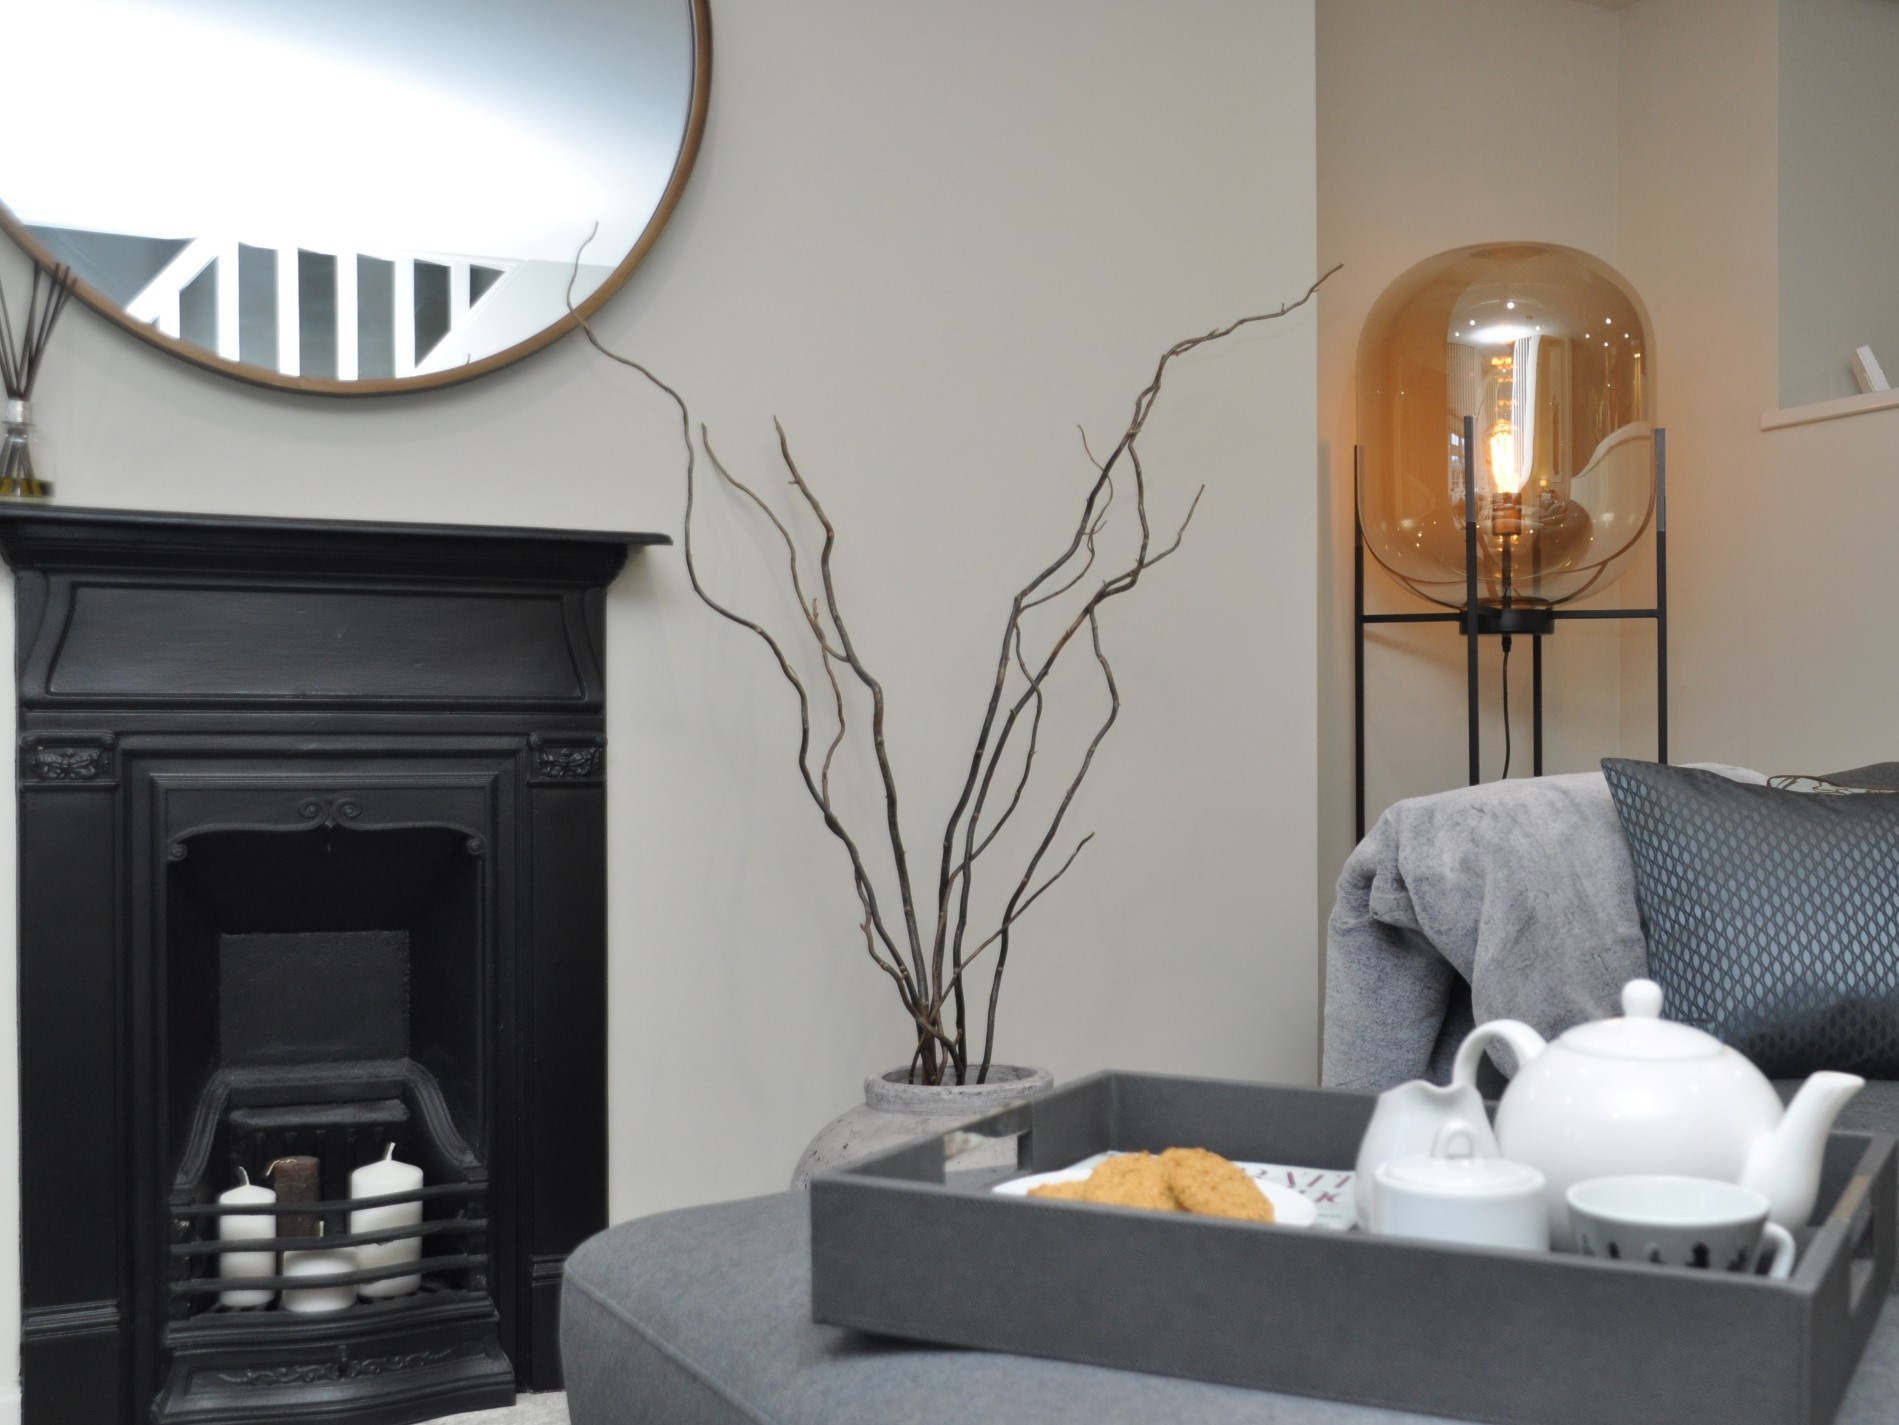 The cottage has a clever mix of contemporary lighting and original features